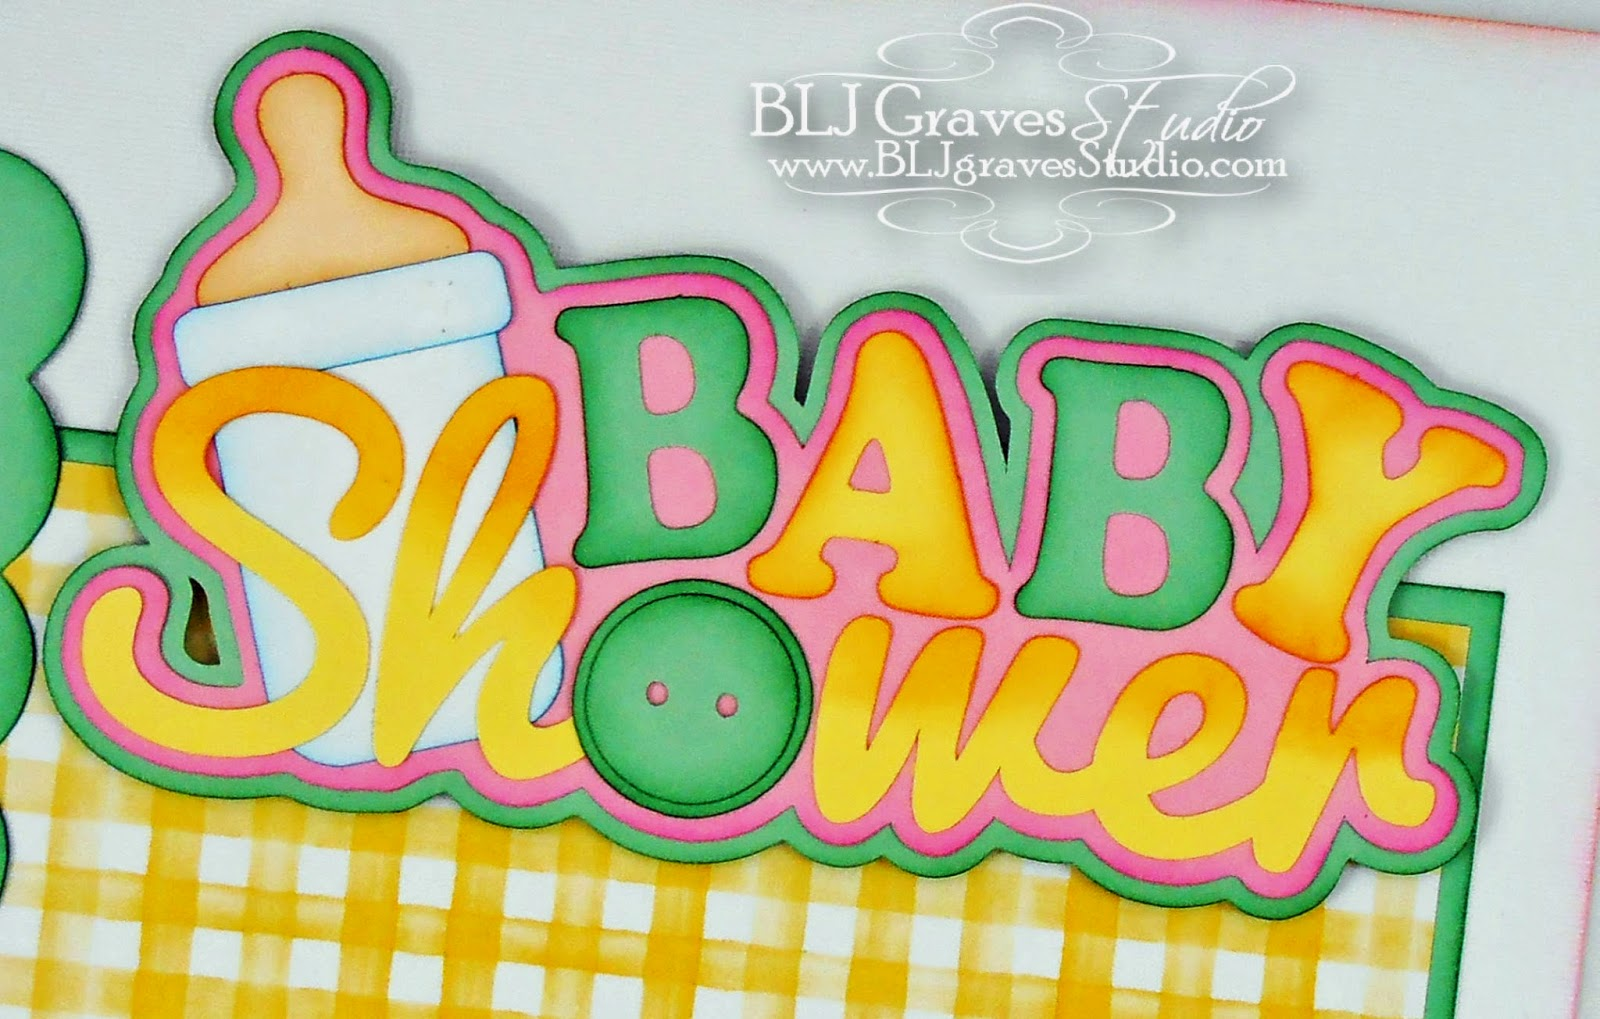 Blj Graves Studio Baby Shower Single Page Layout